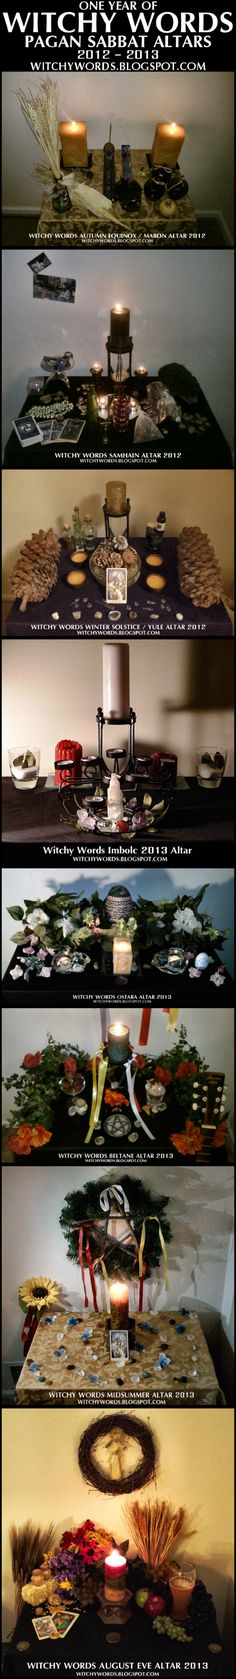 Altars: Witchy Words: One Year of Pagan Sabbat #Altars.